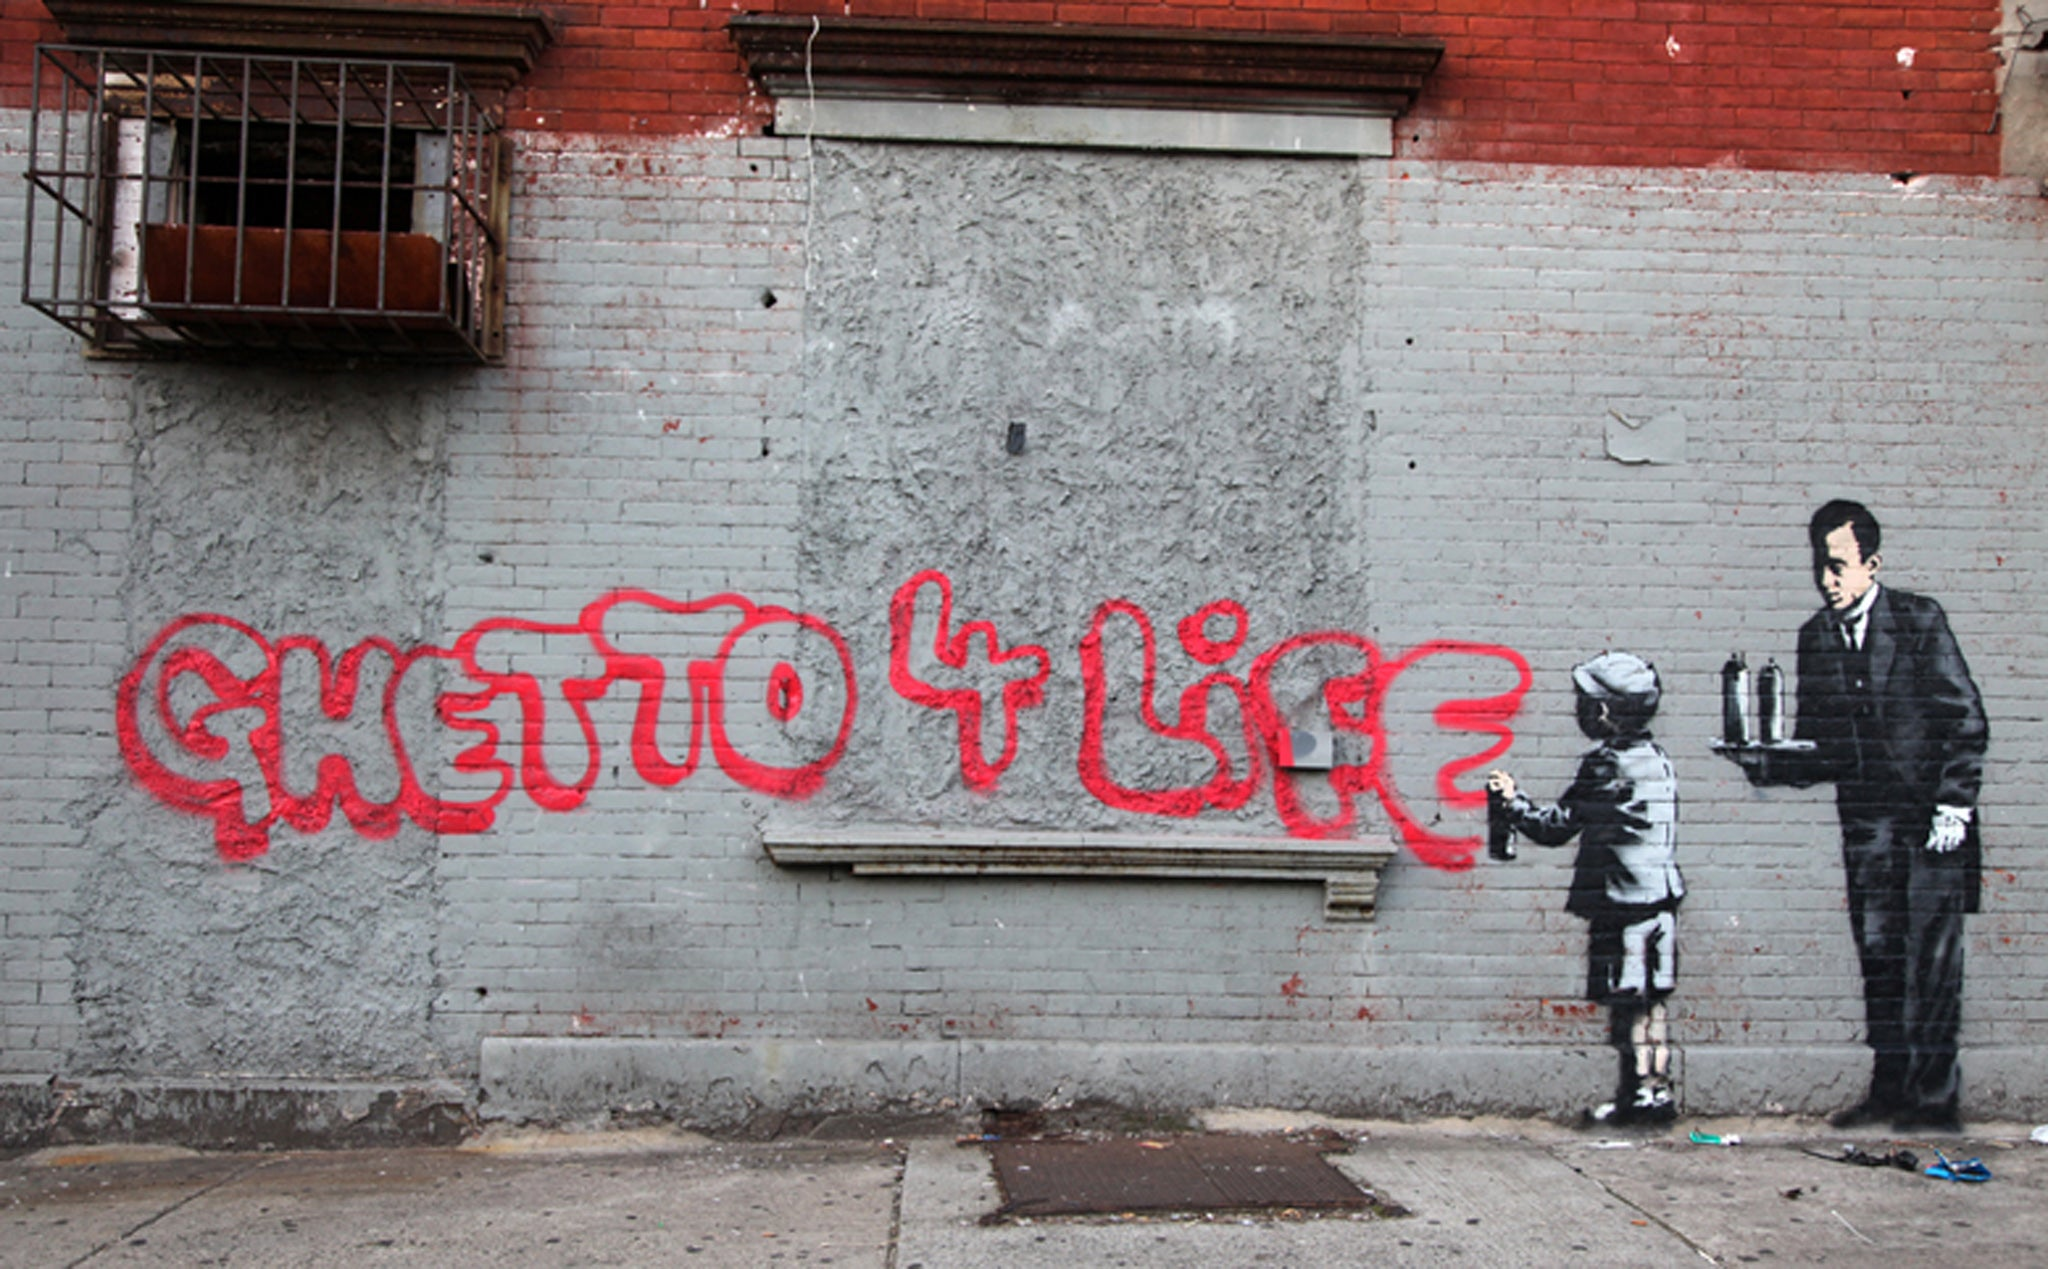 Graffiti art with meaning - Banksy Upsets Bronx Residents With Ghetto 4 Life Graffiti The Independent